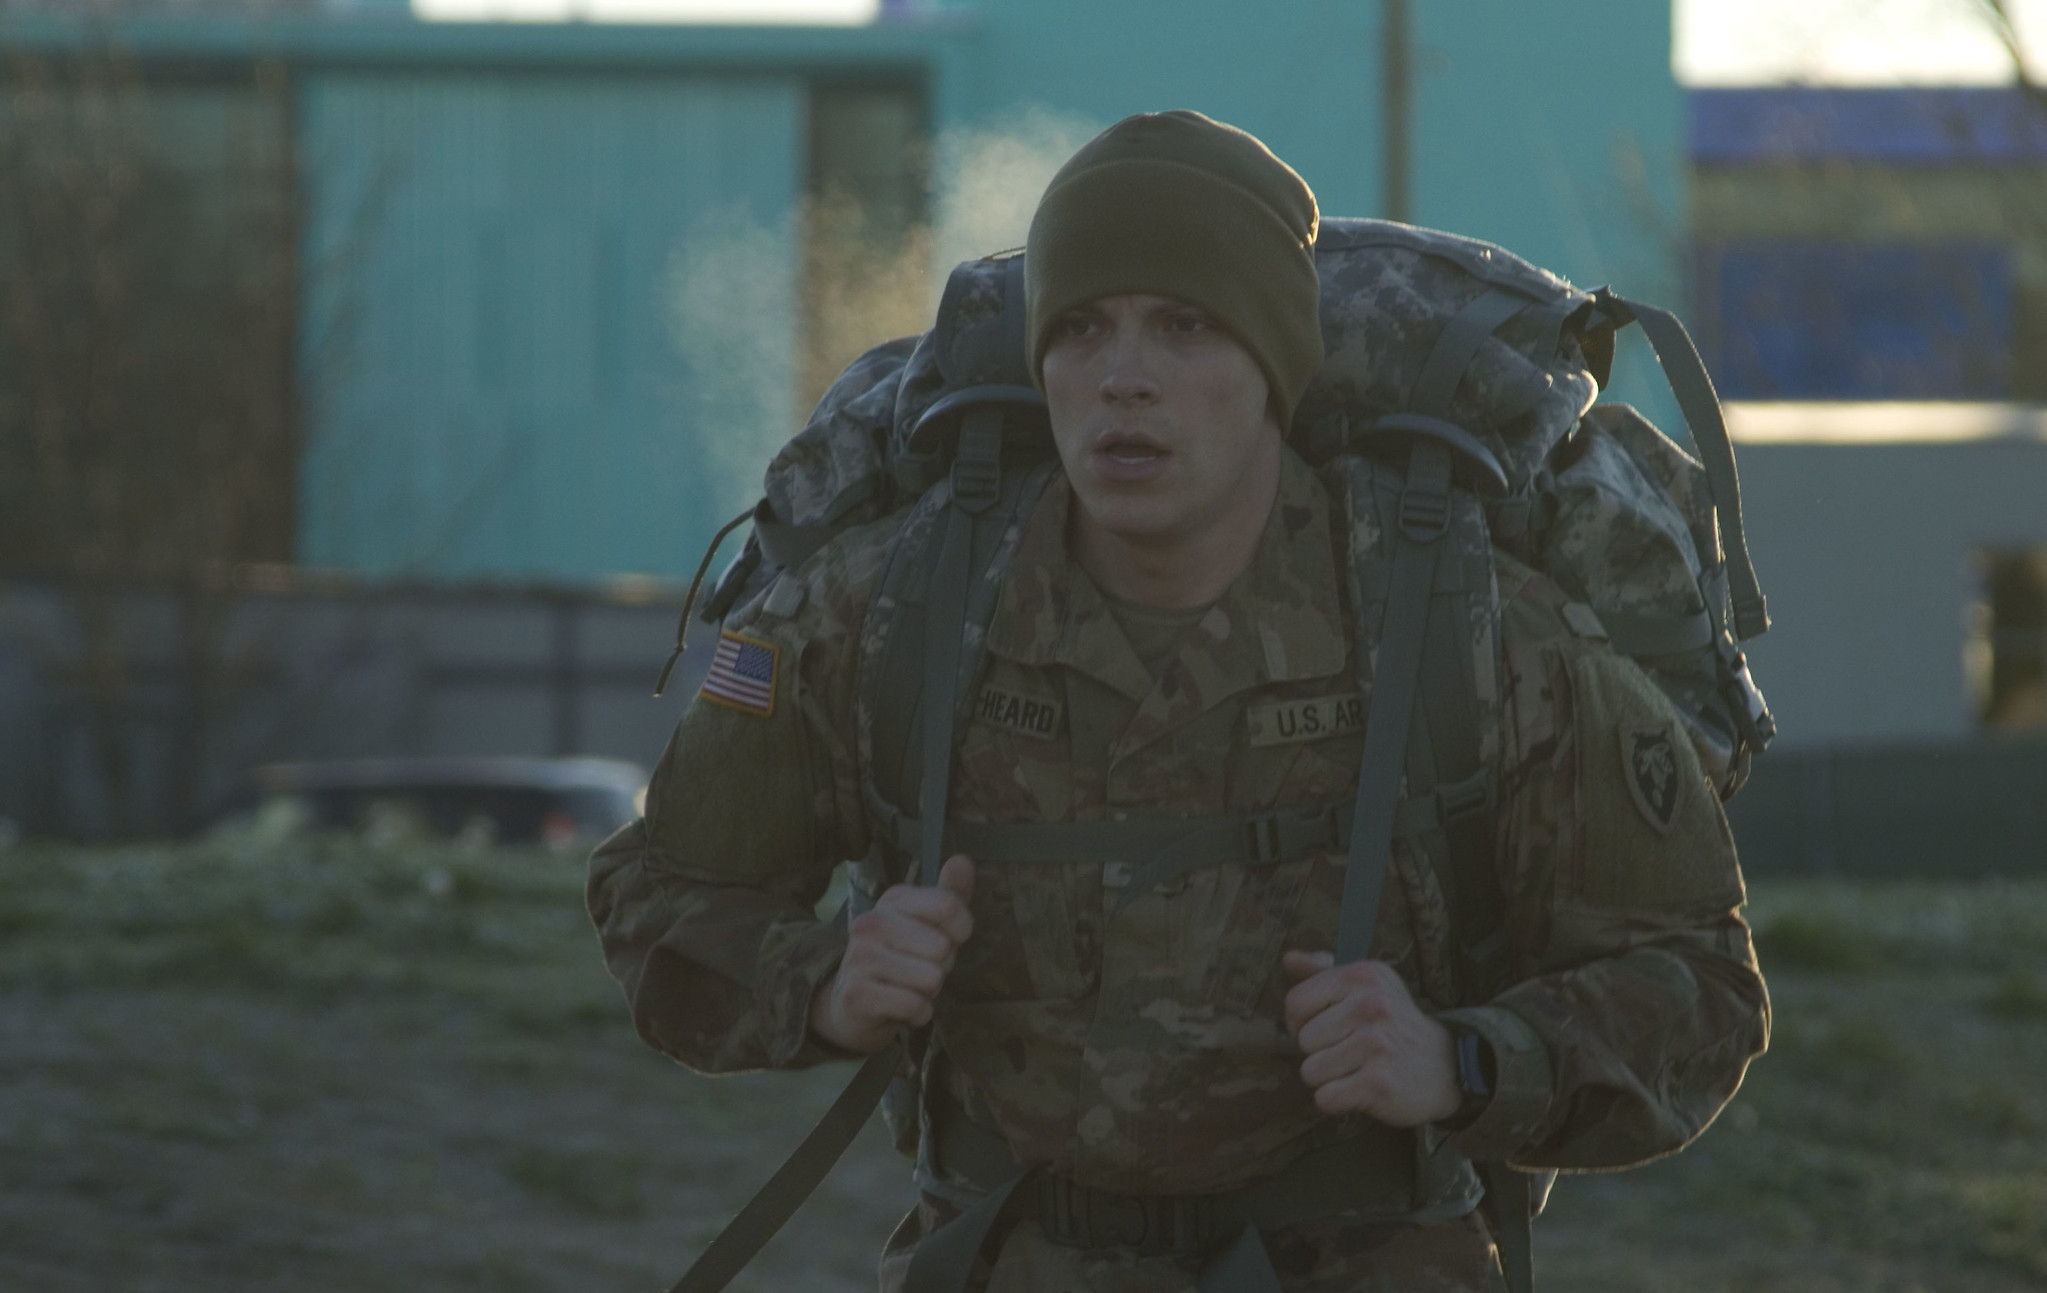 U.S. Army Spc. Jacob Hester-Heard participates in a 6-mile ruck march during the Best Warrior Competition near Claude T. Bowers Military Center Feb. 8, 2020. (Pfc. Logan Collier/Army National Guard)